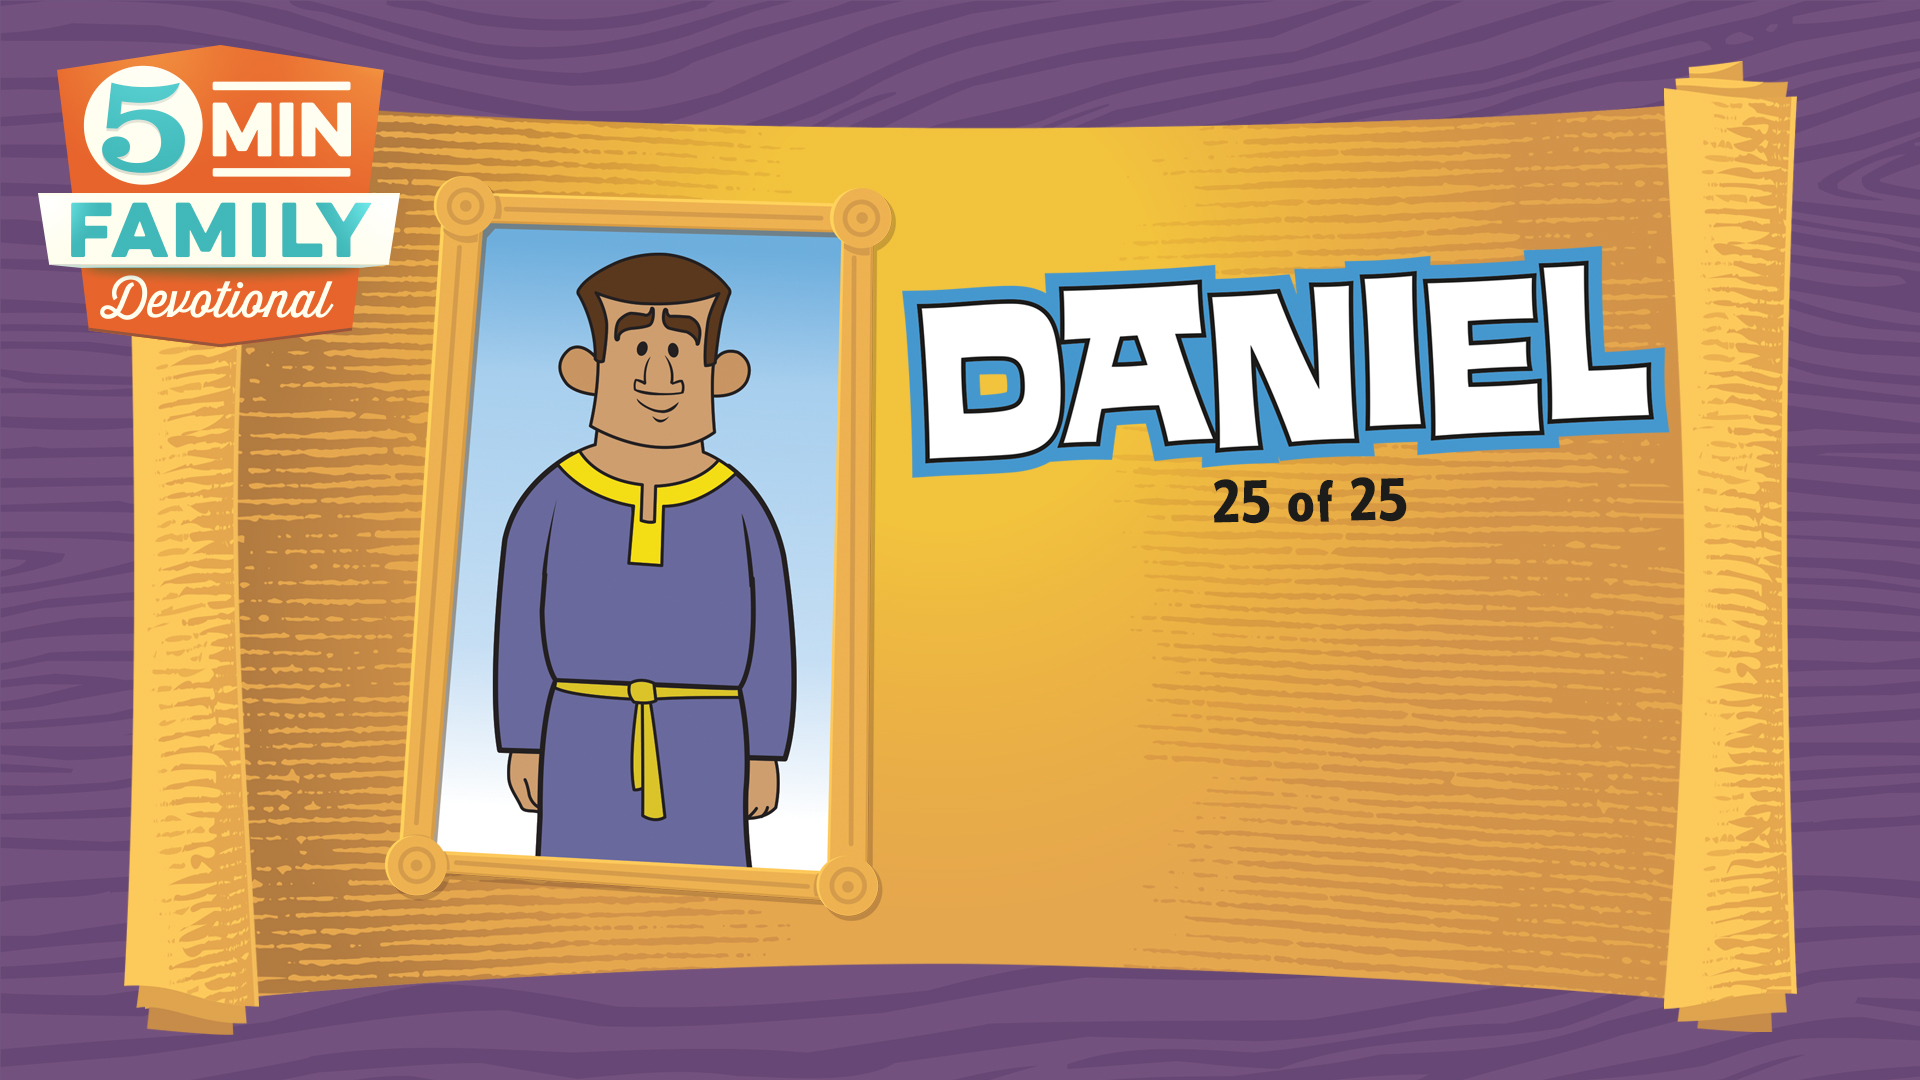 Daniel god protected him